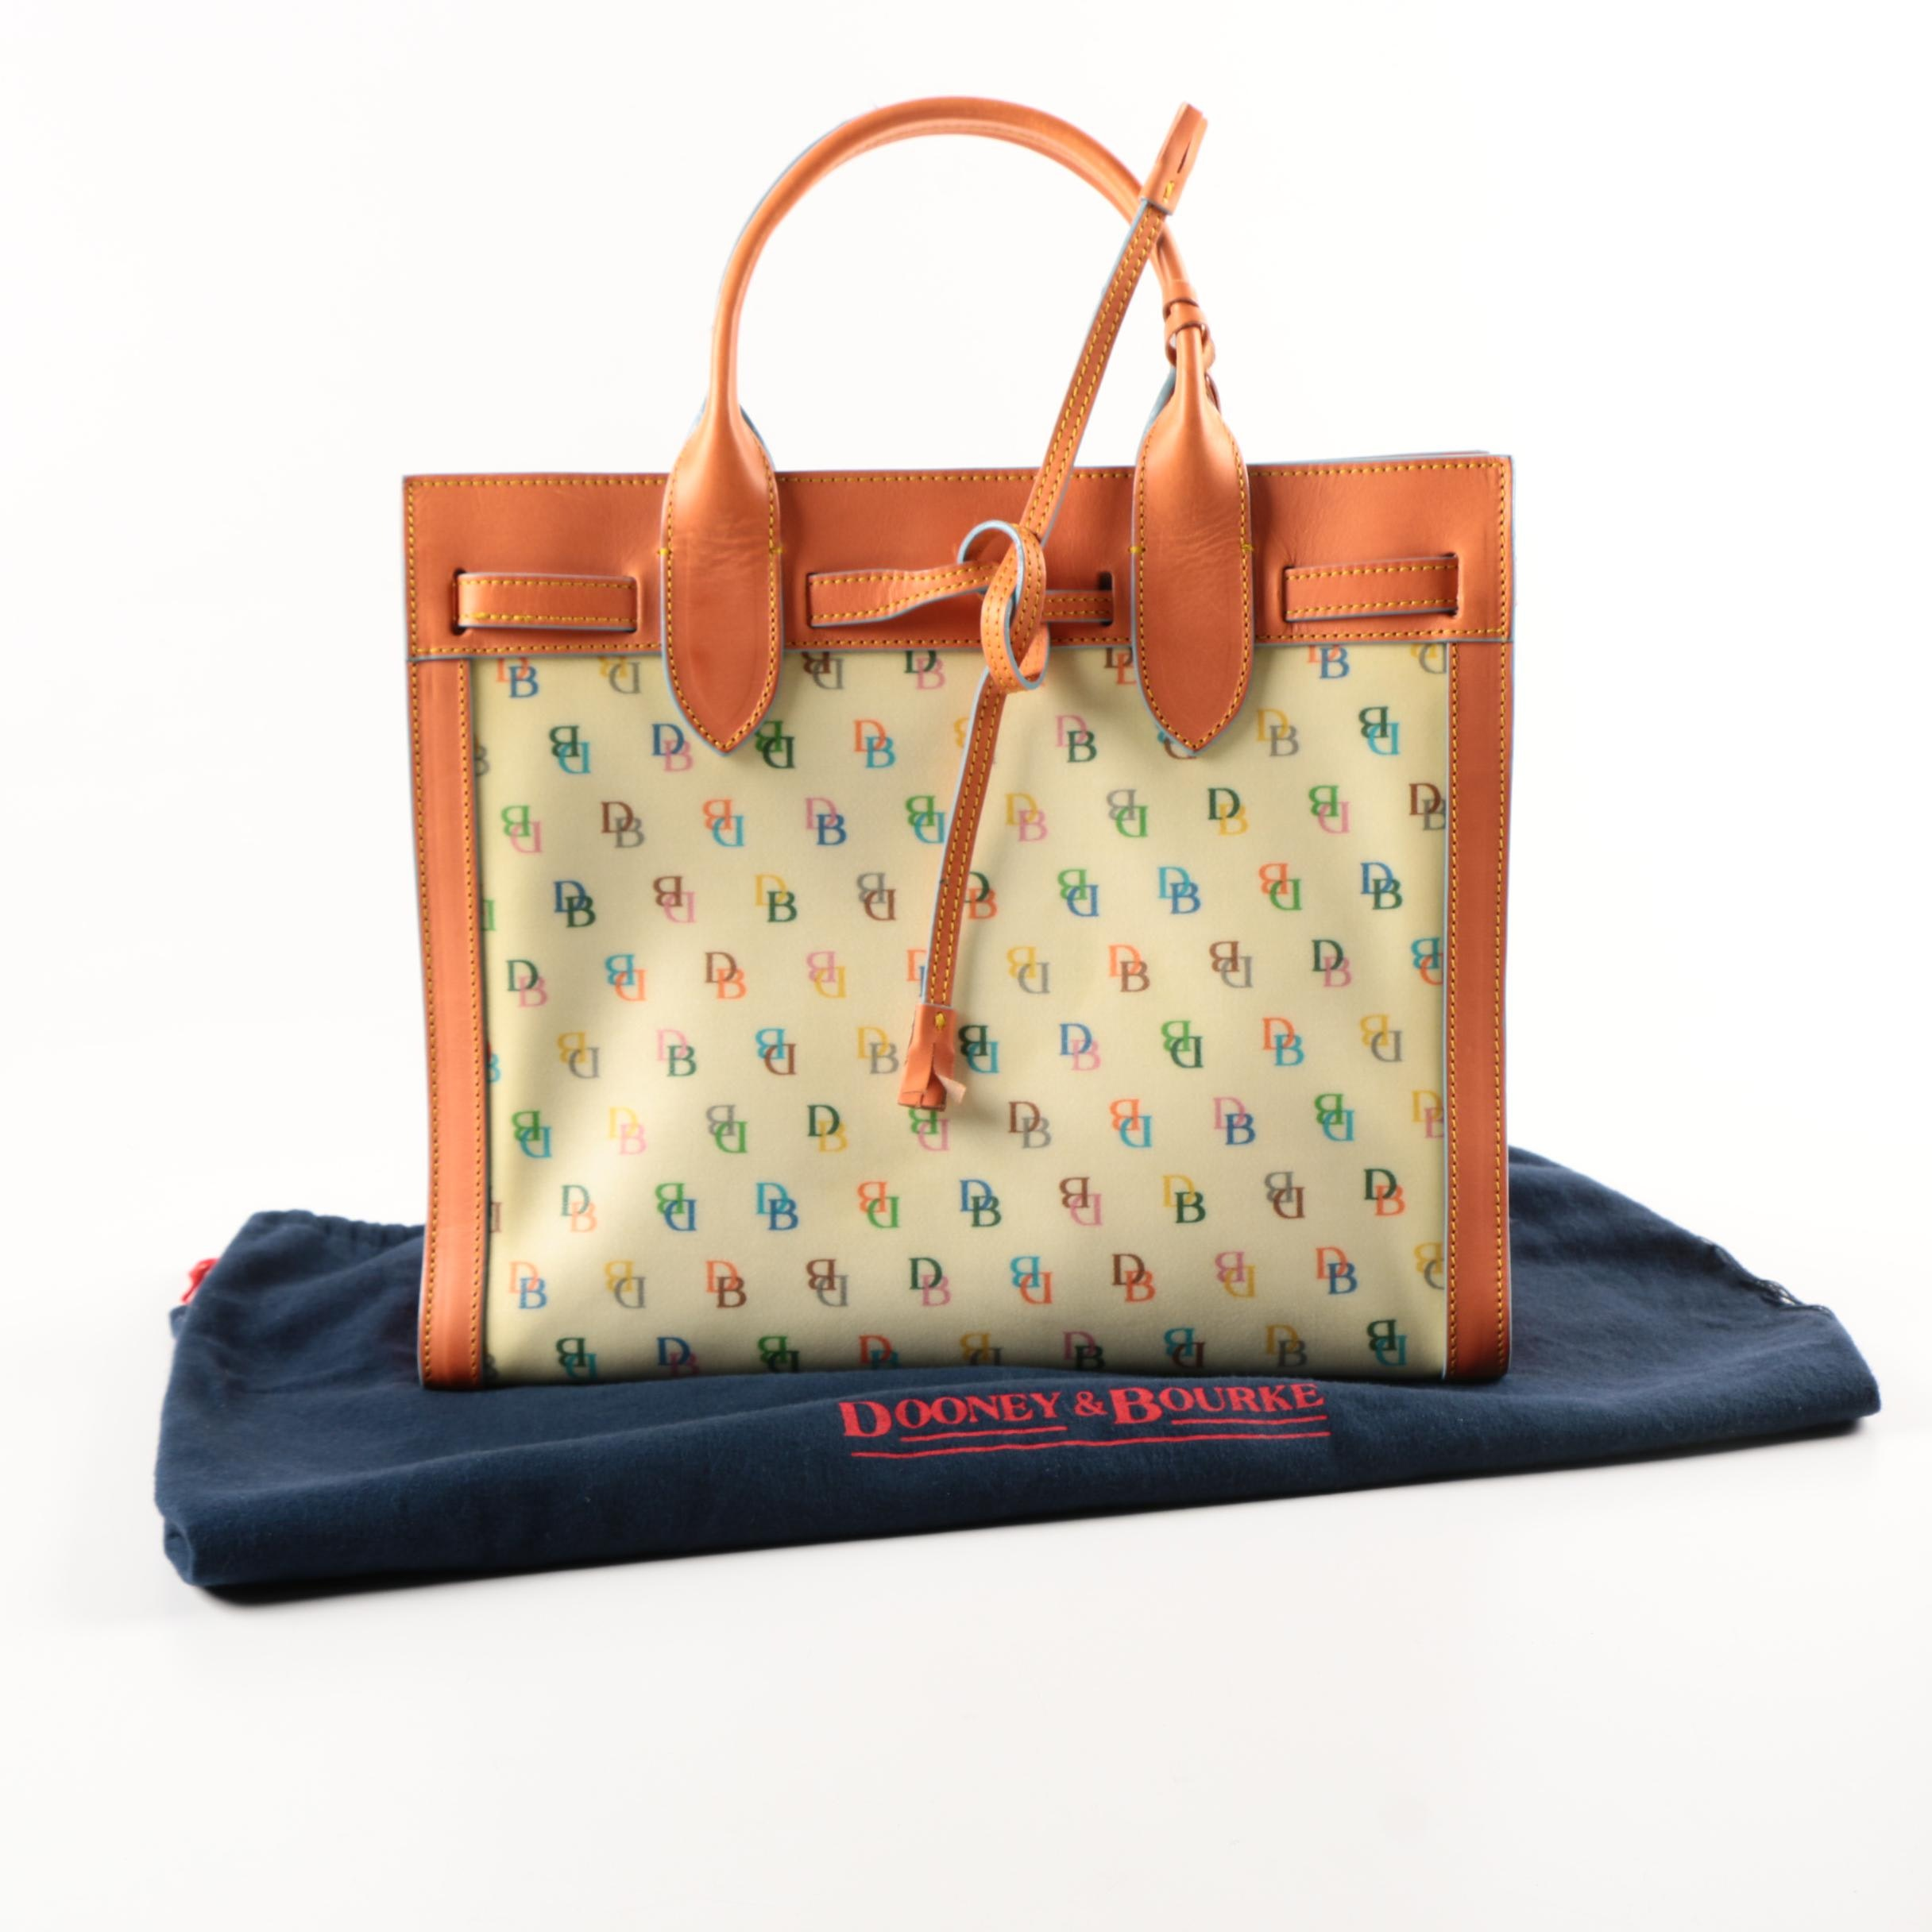 Dooney & Bourke Coated Canvas Tote with Salmon Leather Trim